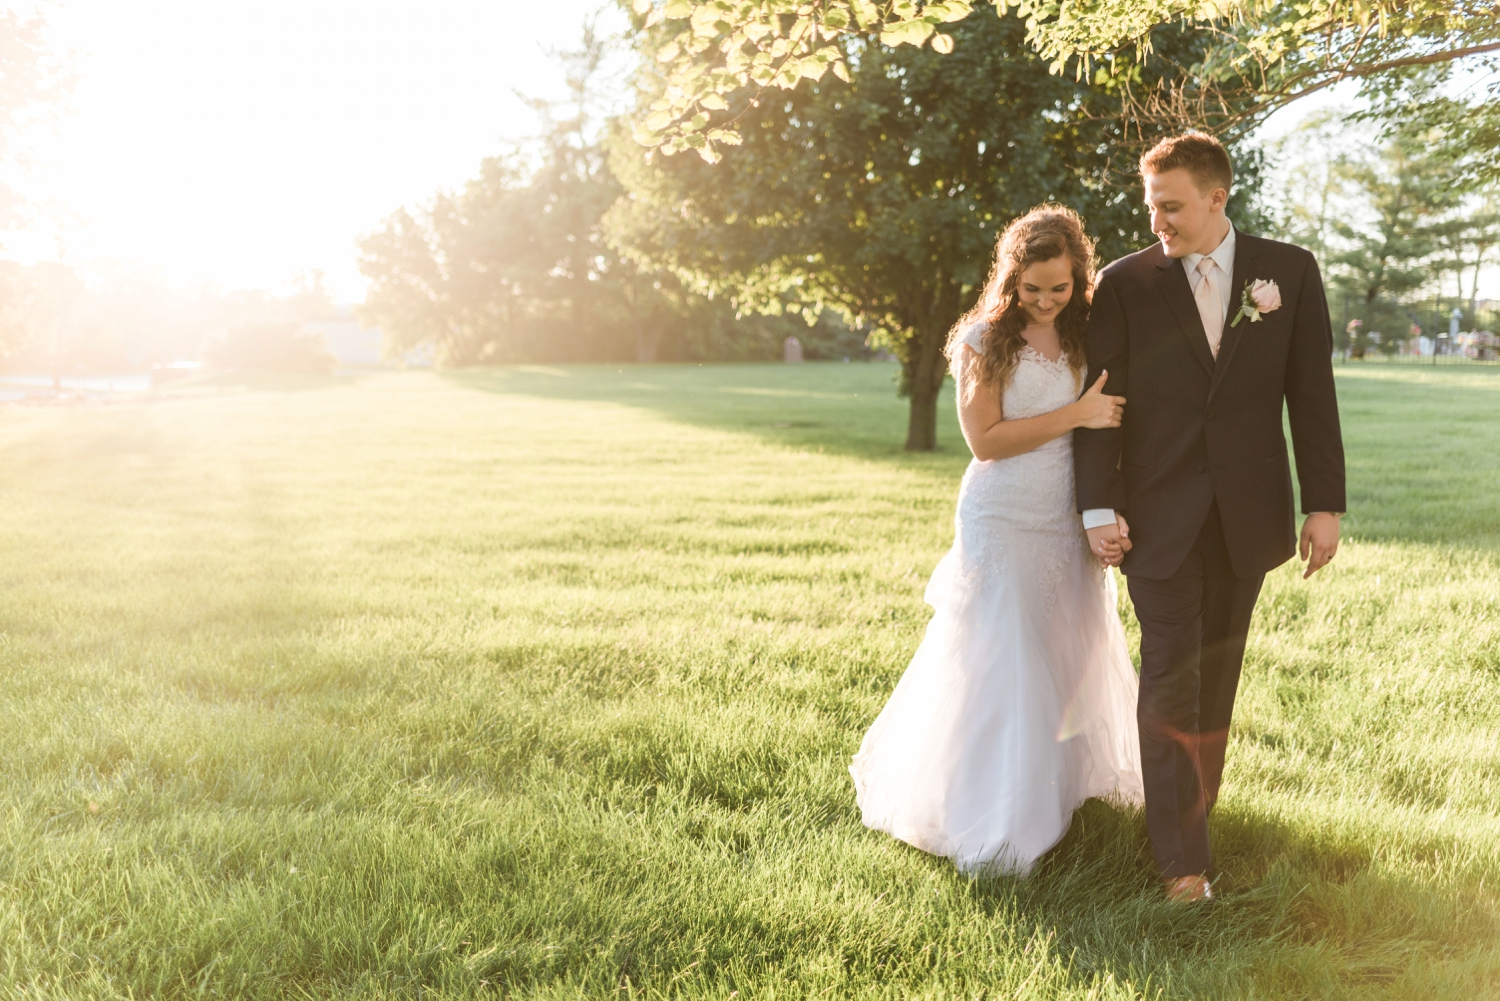 Community_Life_Center_Indianapolis_Indiana_Wedding_Photographer_Chloe_Luka_Photography_6997.jpg